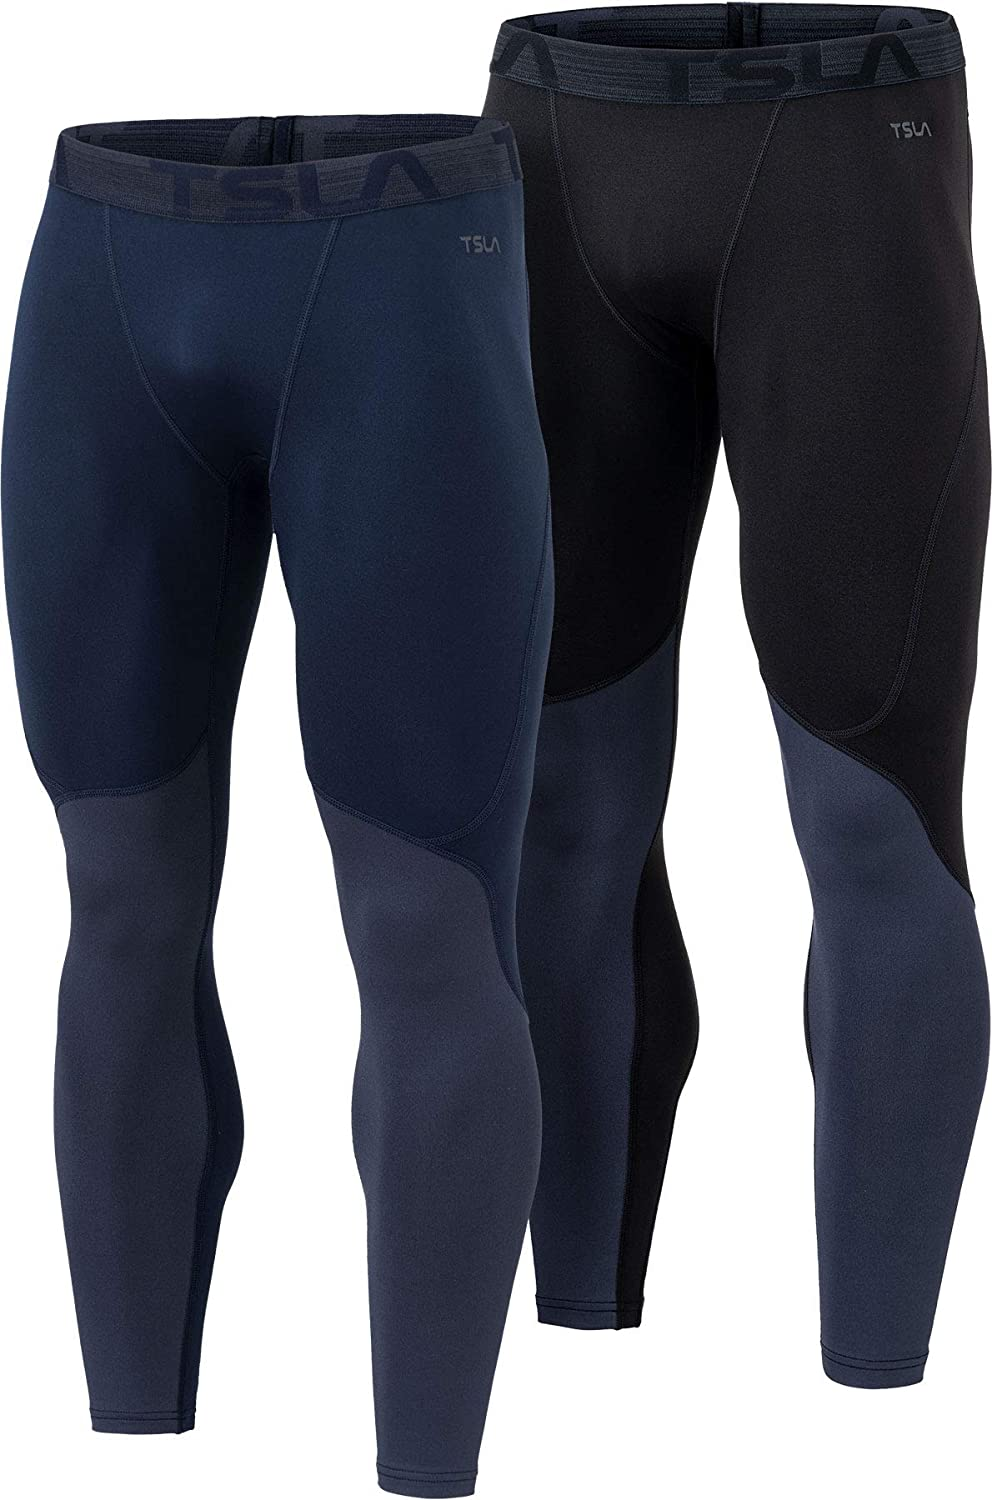 TSLA Men's Thermal Compression Pants, Wintergear Base Layer Bottoms, Athletic Sports Leggings & Running Tights